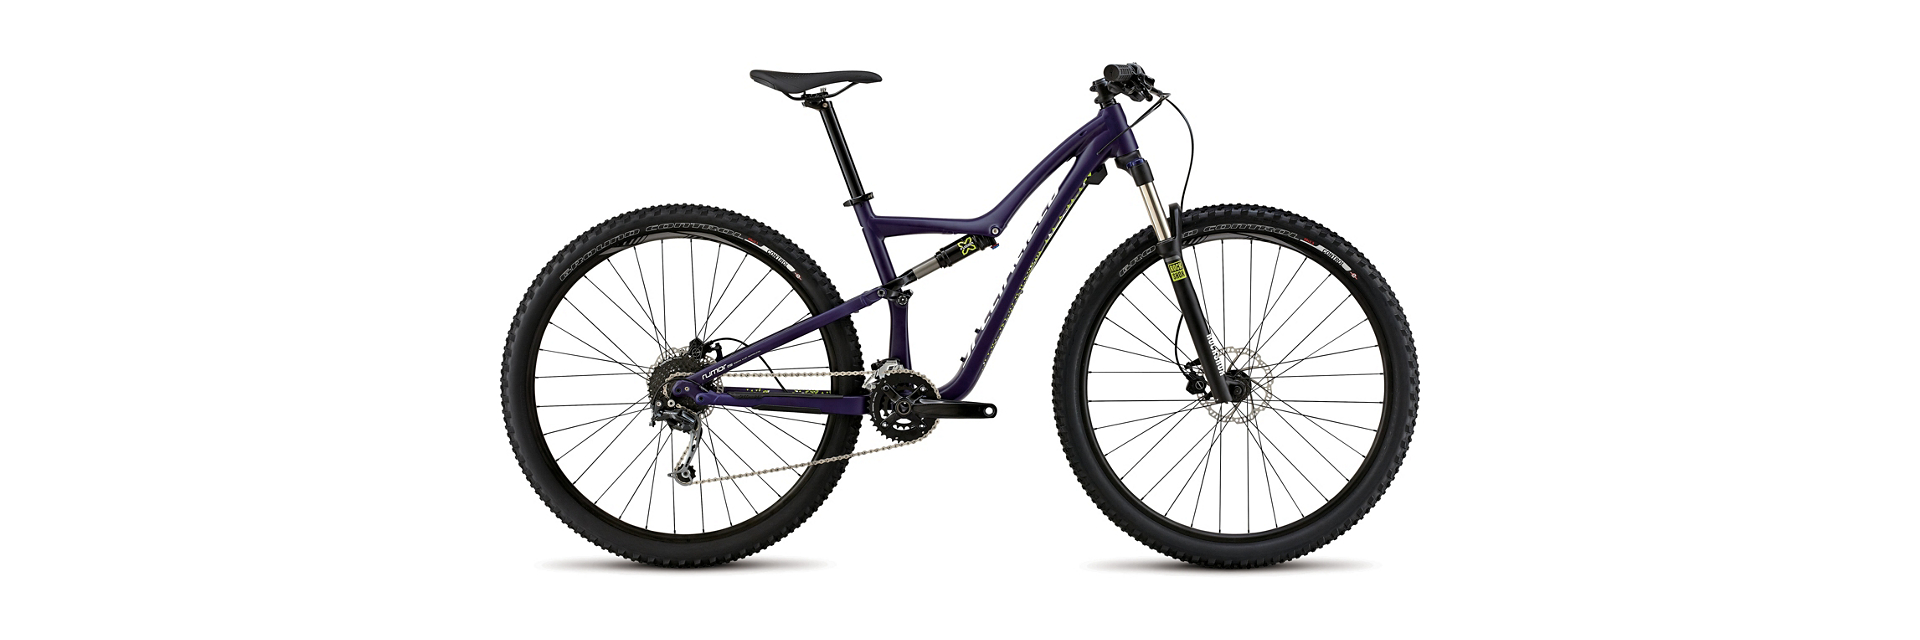 Specialized Rumor anthracite